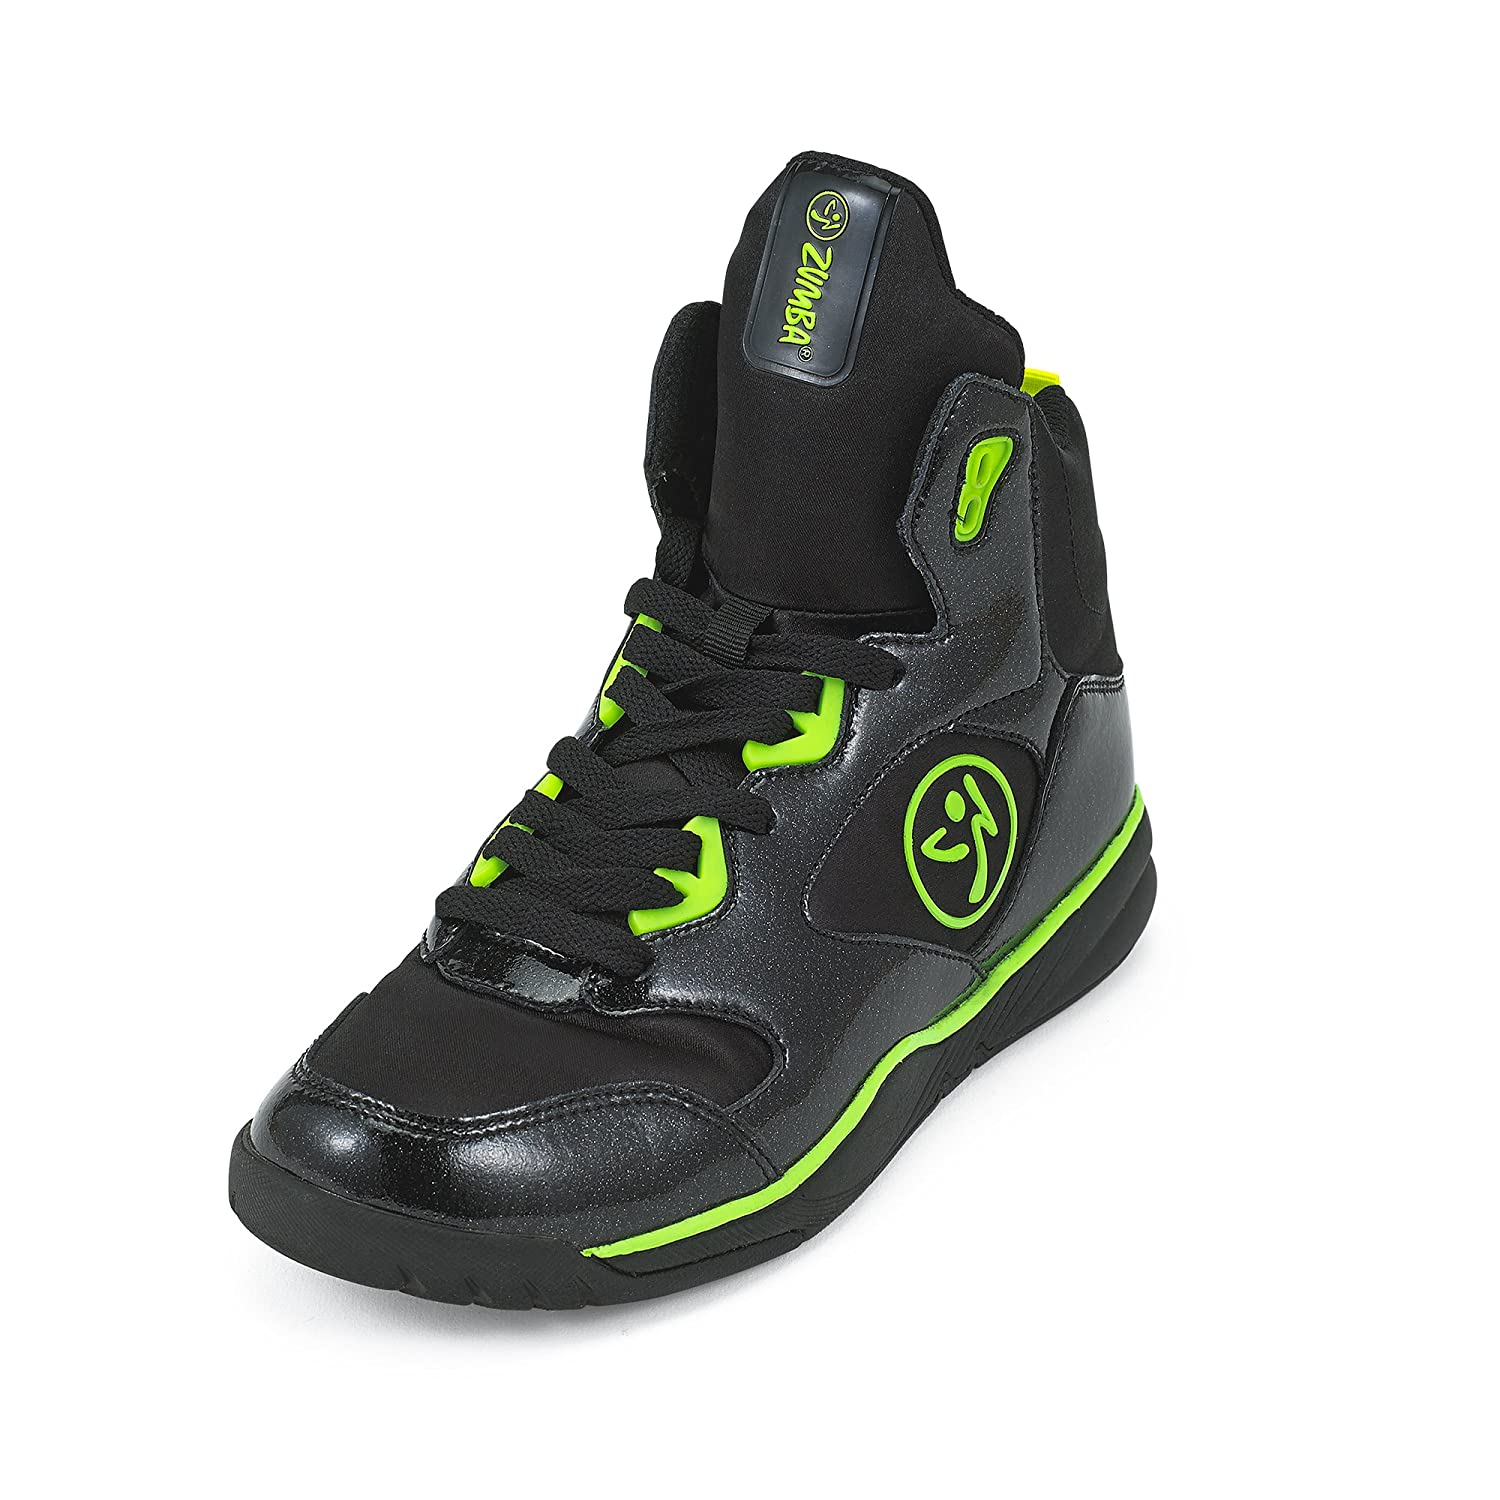 Zumba Women's Energy Boom High Top Dance Workout Sneakers with Enhanced Comfort Support B0744R39YP 6.5 B(M) US|Black